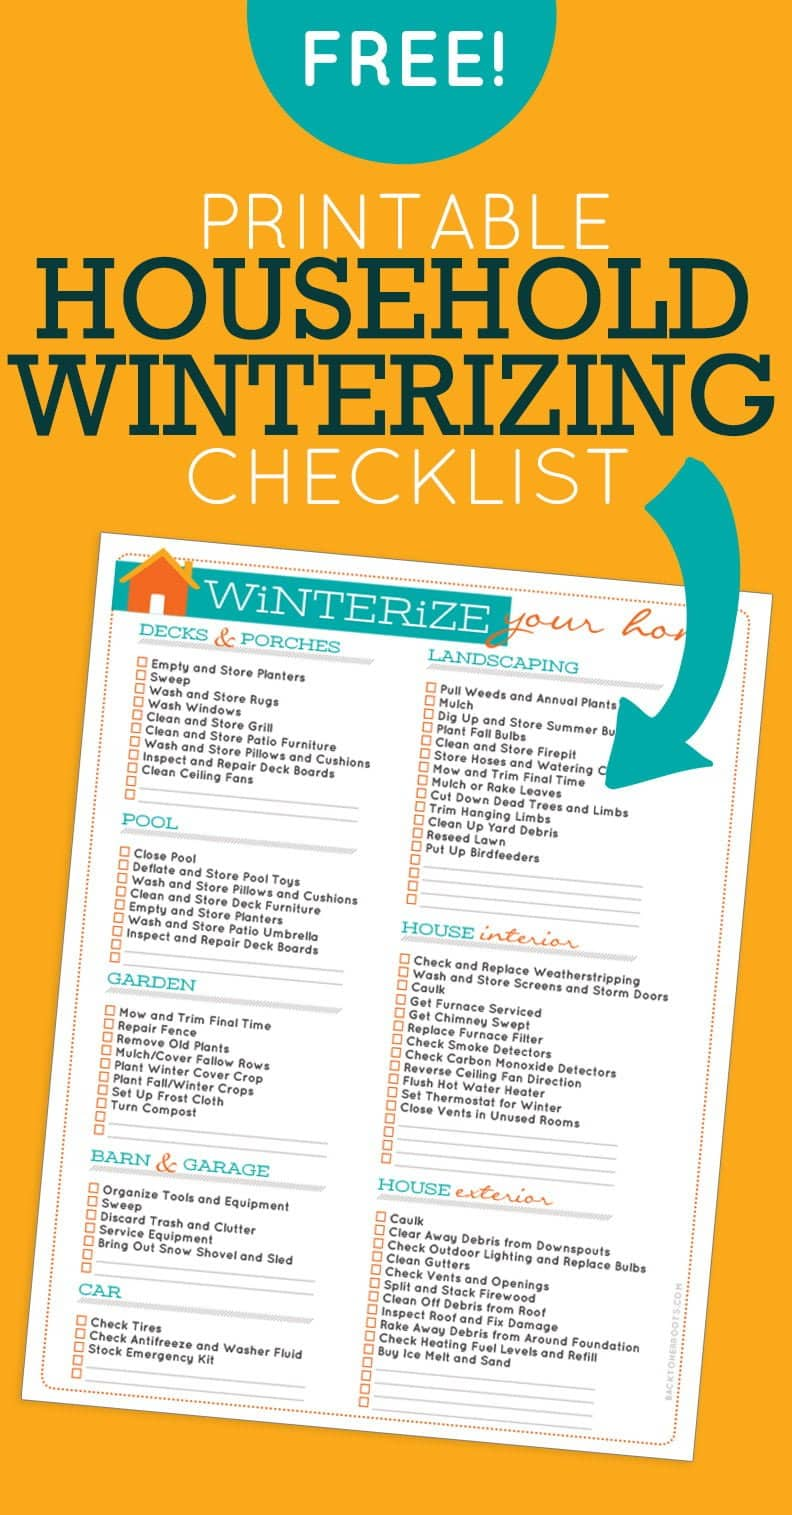 Free Printable Winterizing Checklist